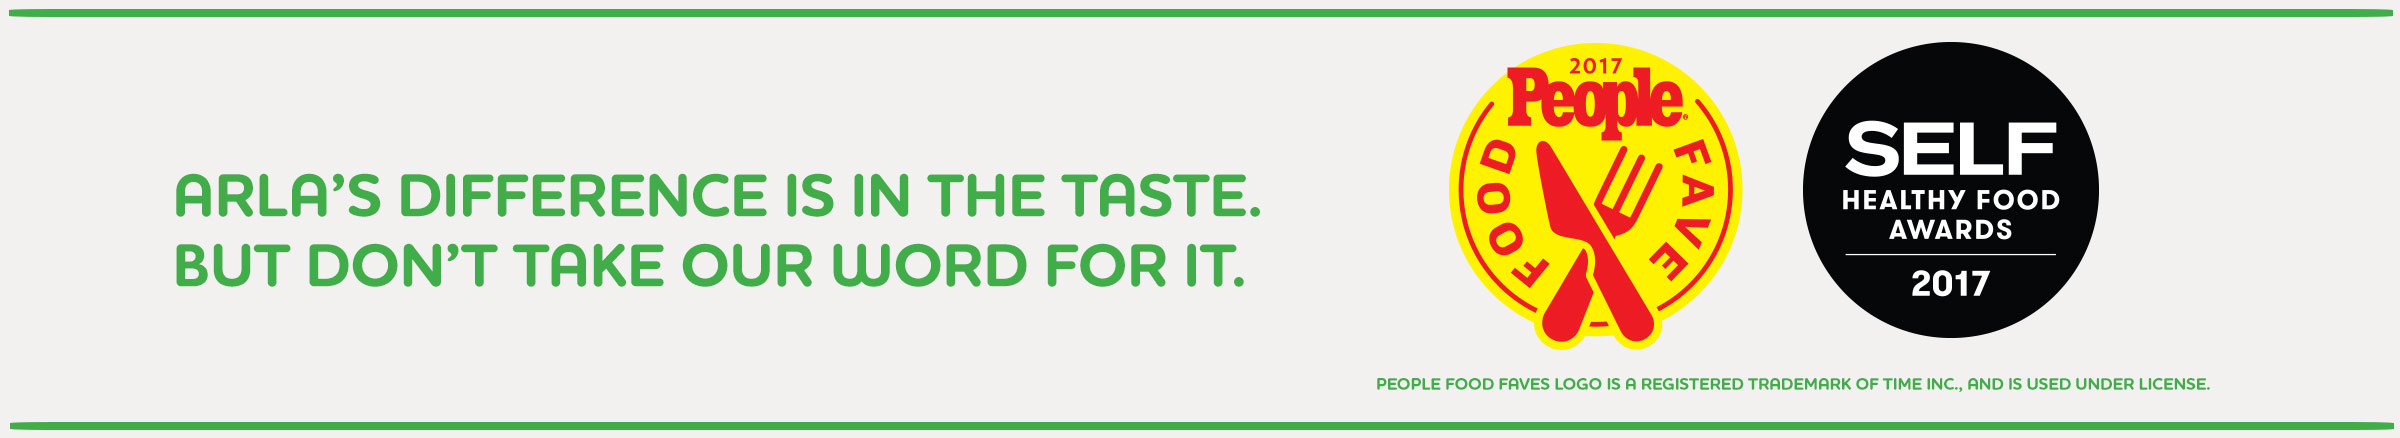 Arla's difference is in the taste. But don't take our word for it.